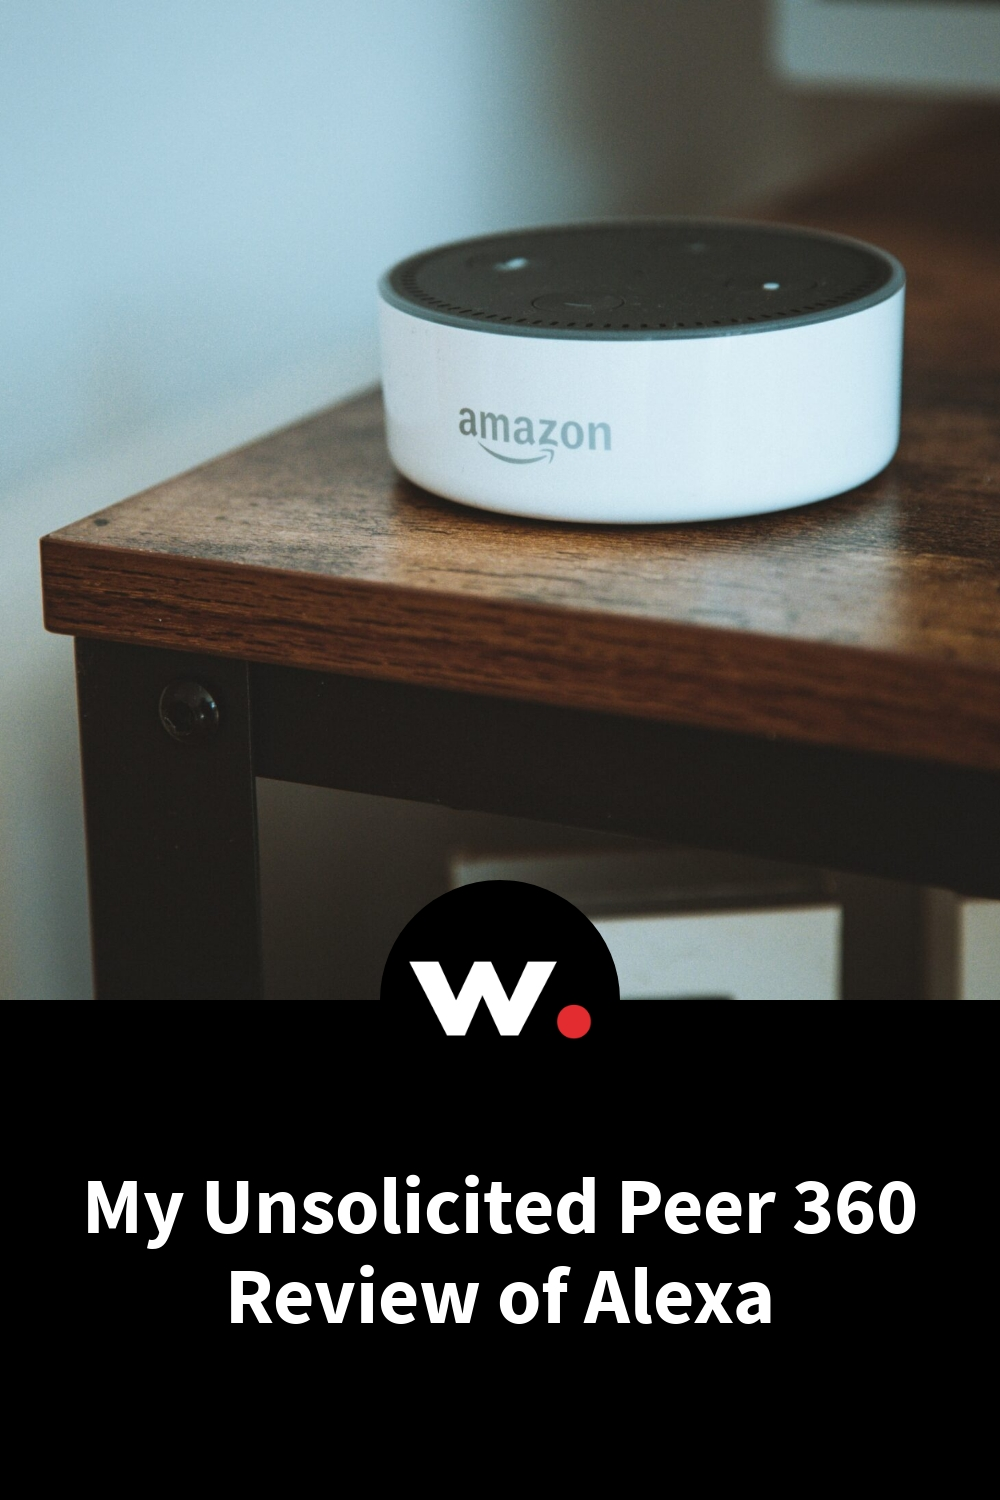 My Unsolicited Peer 360 Review of Alexa